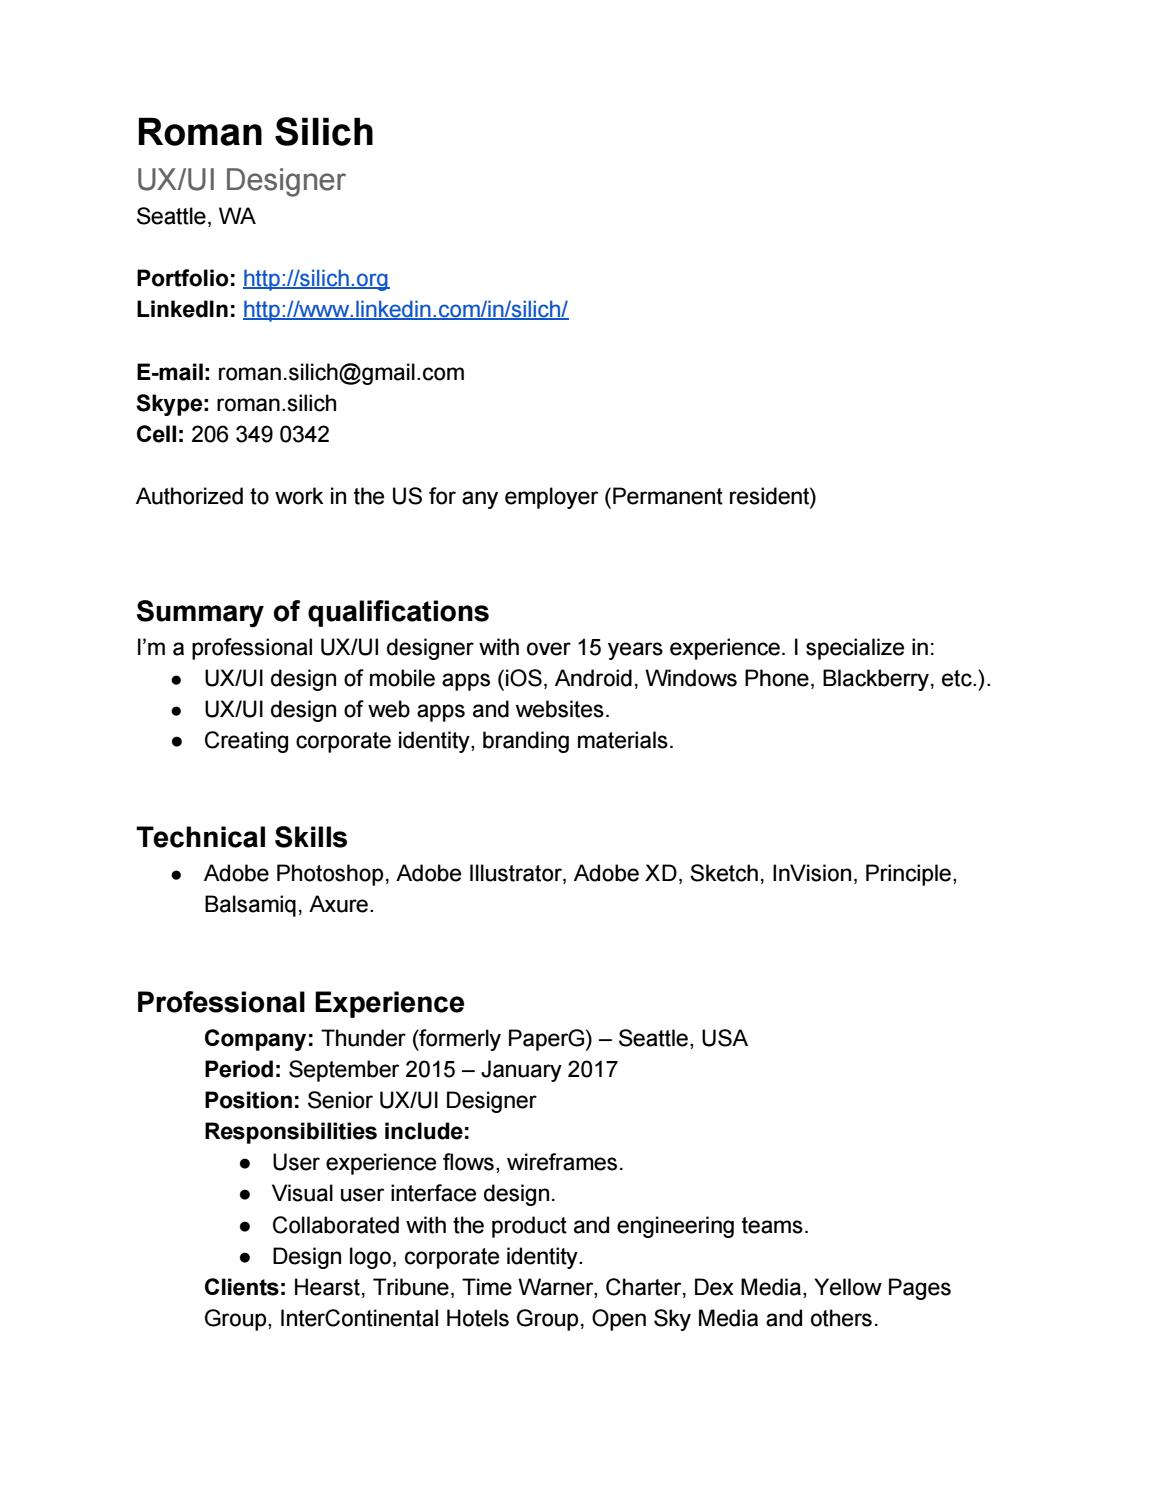 roman siich resume by silich issuu for permanent resident generator service engineer Resume Resume For Permanent Resident